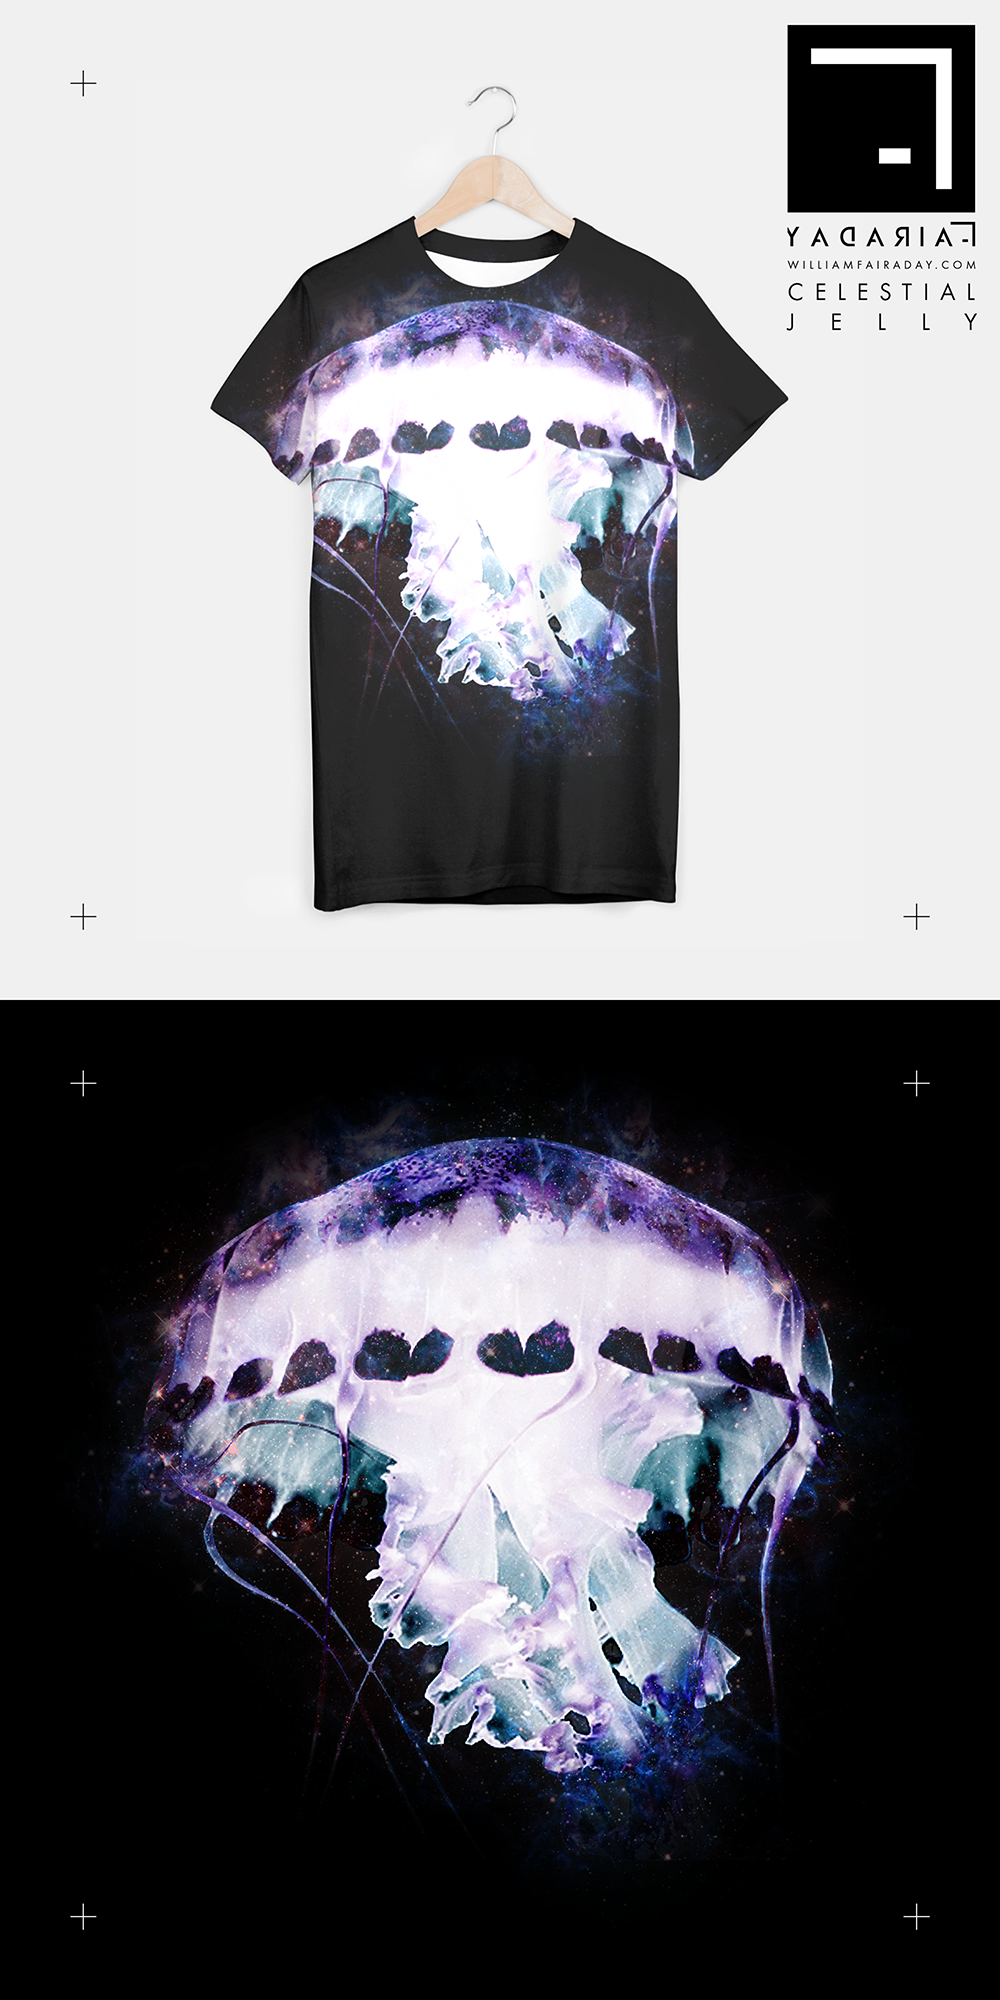 Celestial Jelly T-Shirt 01a.png